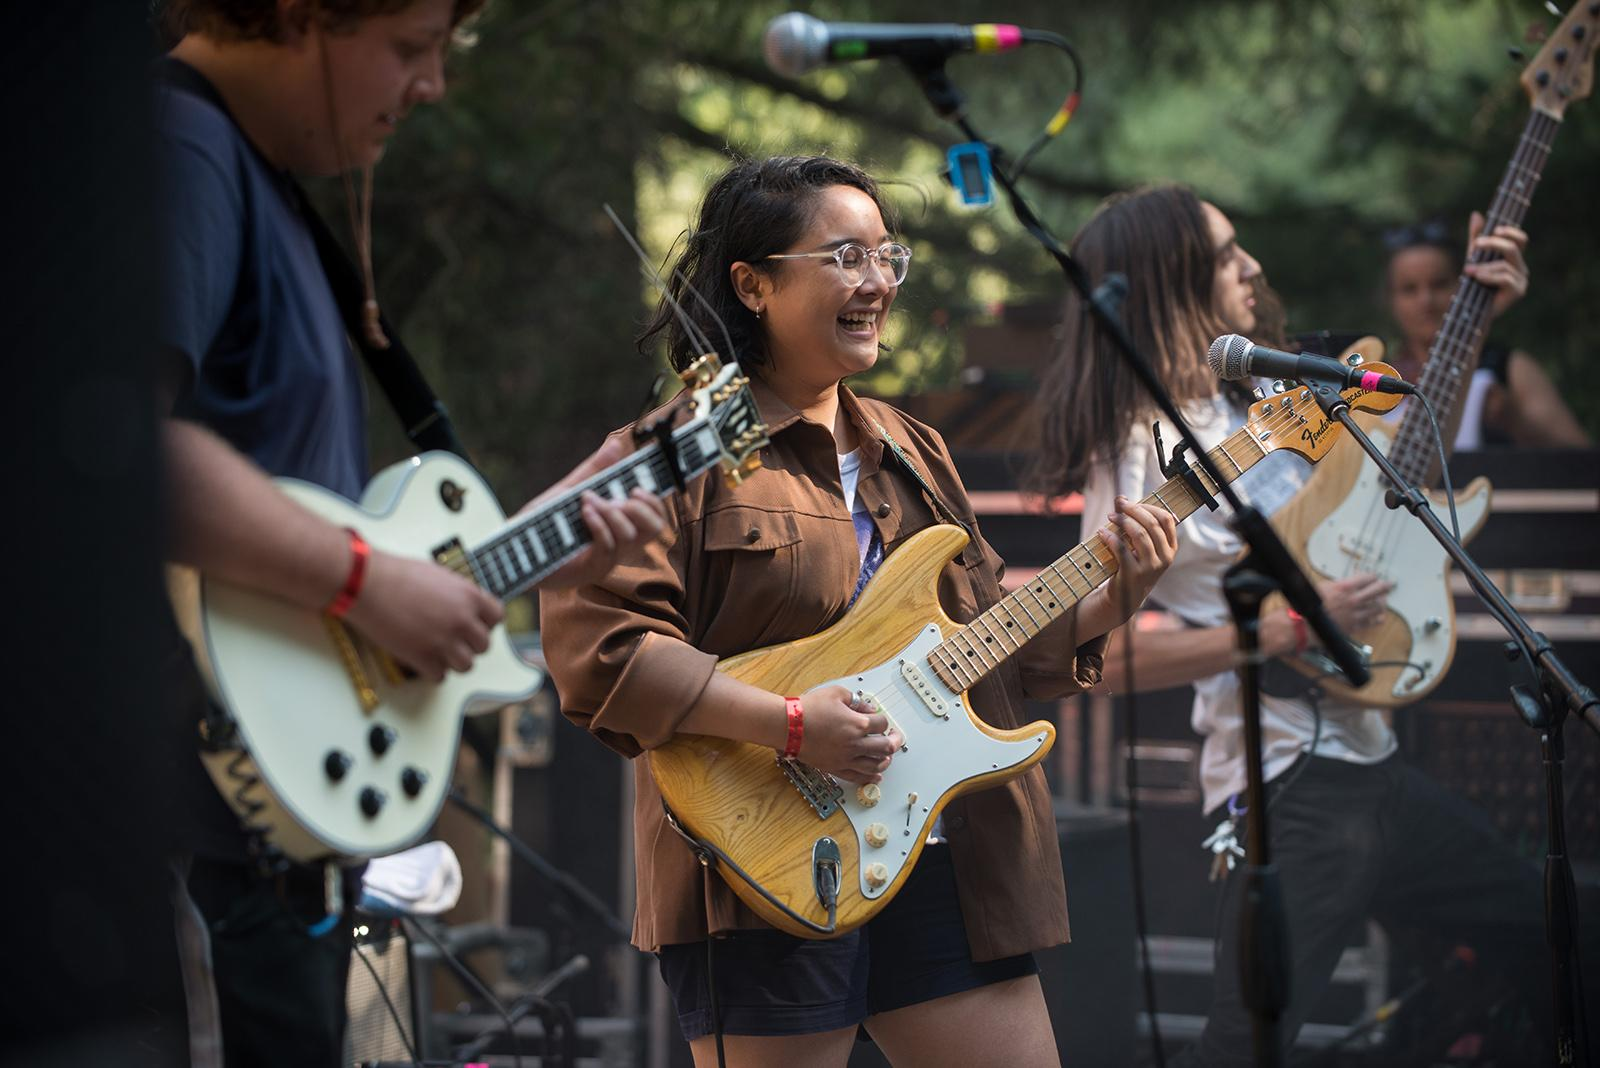 Music fans of all ages braved the summer heat Friday for the 2017 Pickathon, an independent music festival held on Pendarvis Farm in Happy Valley. The four-day festival brings together local musical acts and artists from around the globe, and spans several genres. (Photo taken 8-4-2017 by Tristan Fortsch/KATU News)